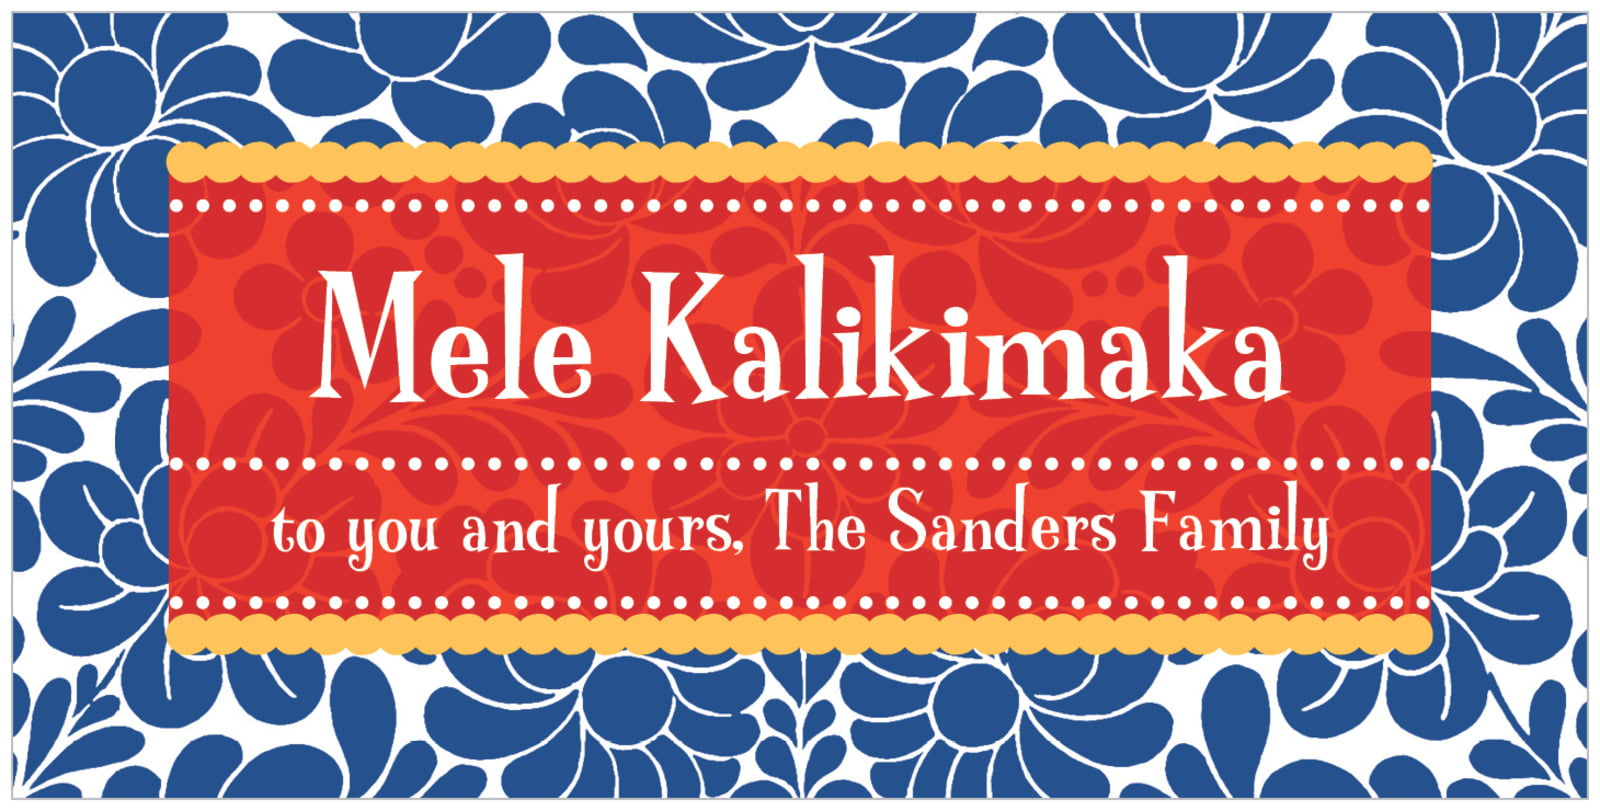 small rectangular food/craft labels - deep blue - mele kalikimaka (set of 24)